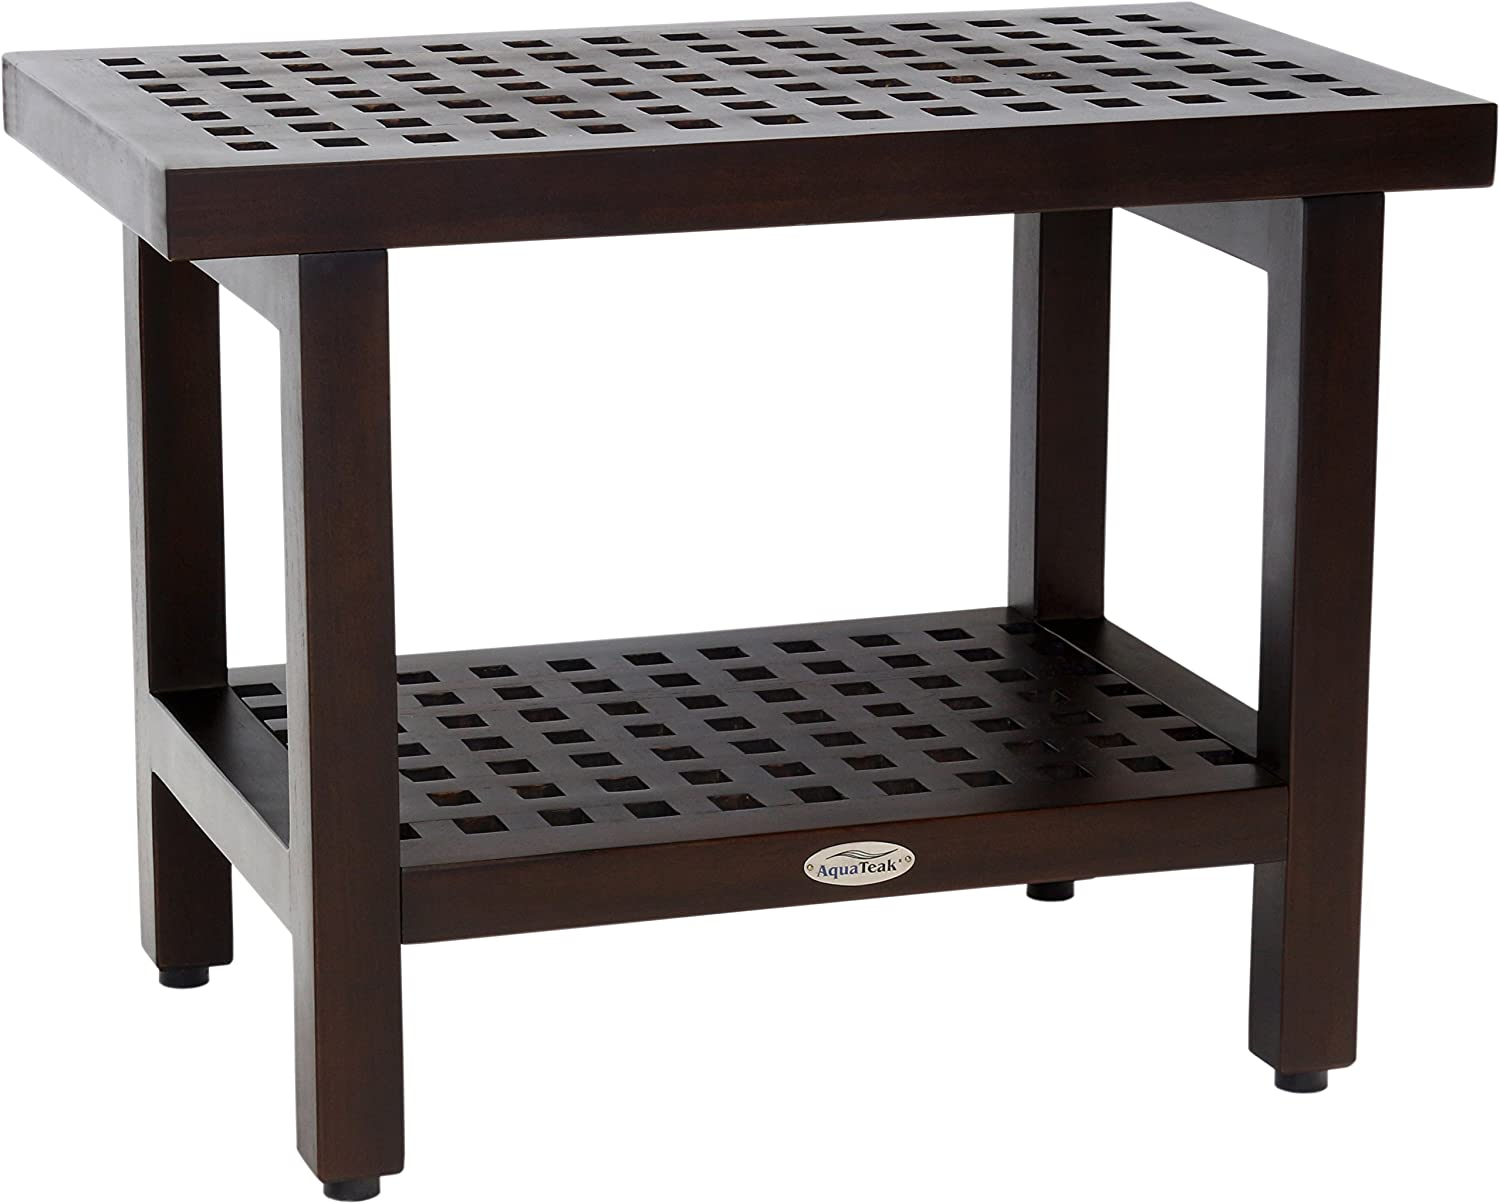 "AquaTeak 24"" Grate Mocha Teak Shower Bench with Shelf"